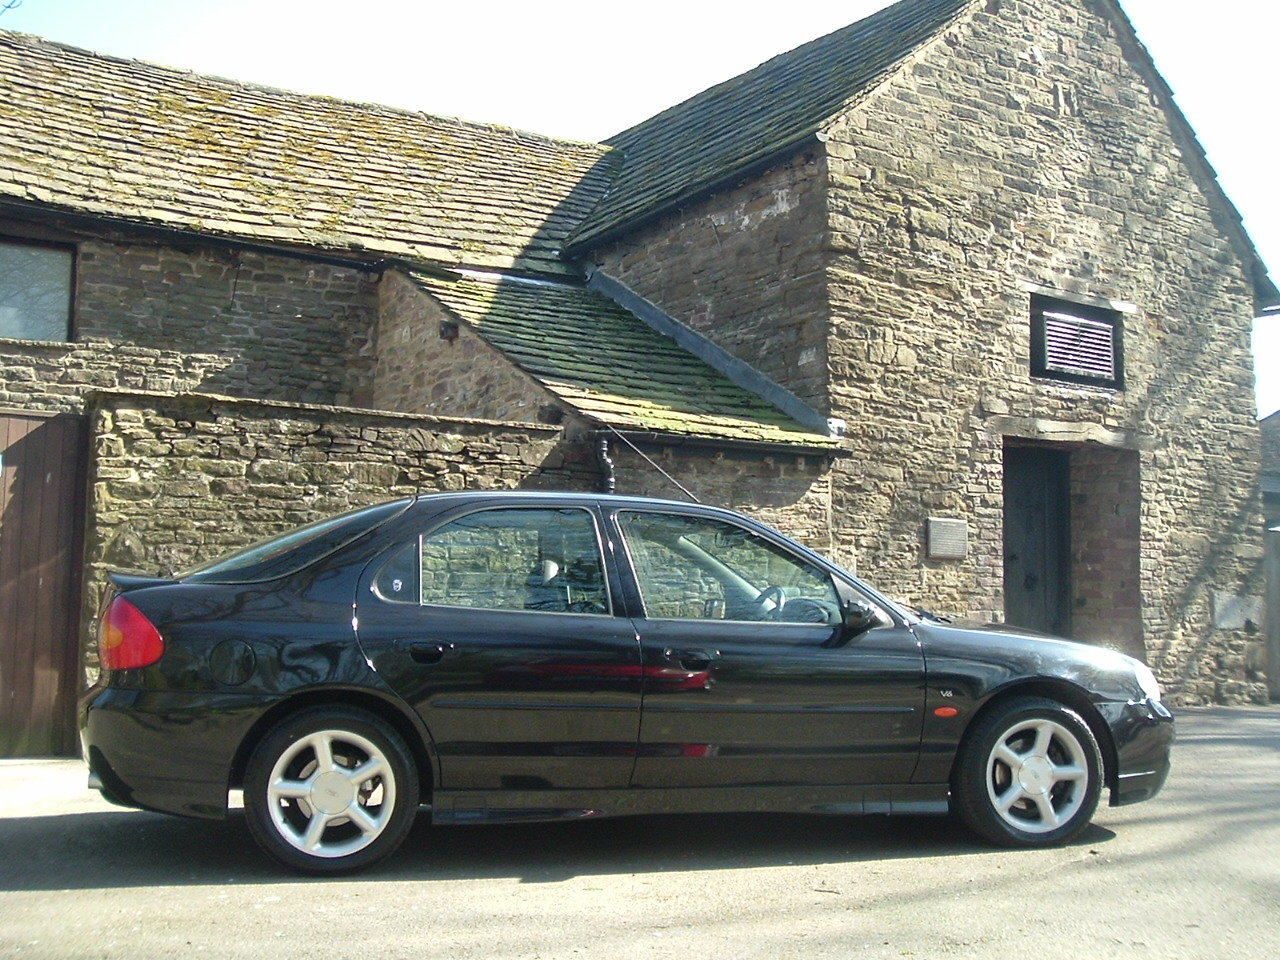 1999 99/V Mondeo Mk2 2.5 V6 Ghia X Manual. 64k Miles/1 Owner/FFSH For Sale (picture 2 of 6)